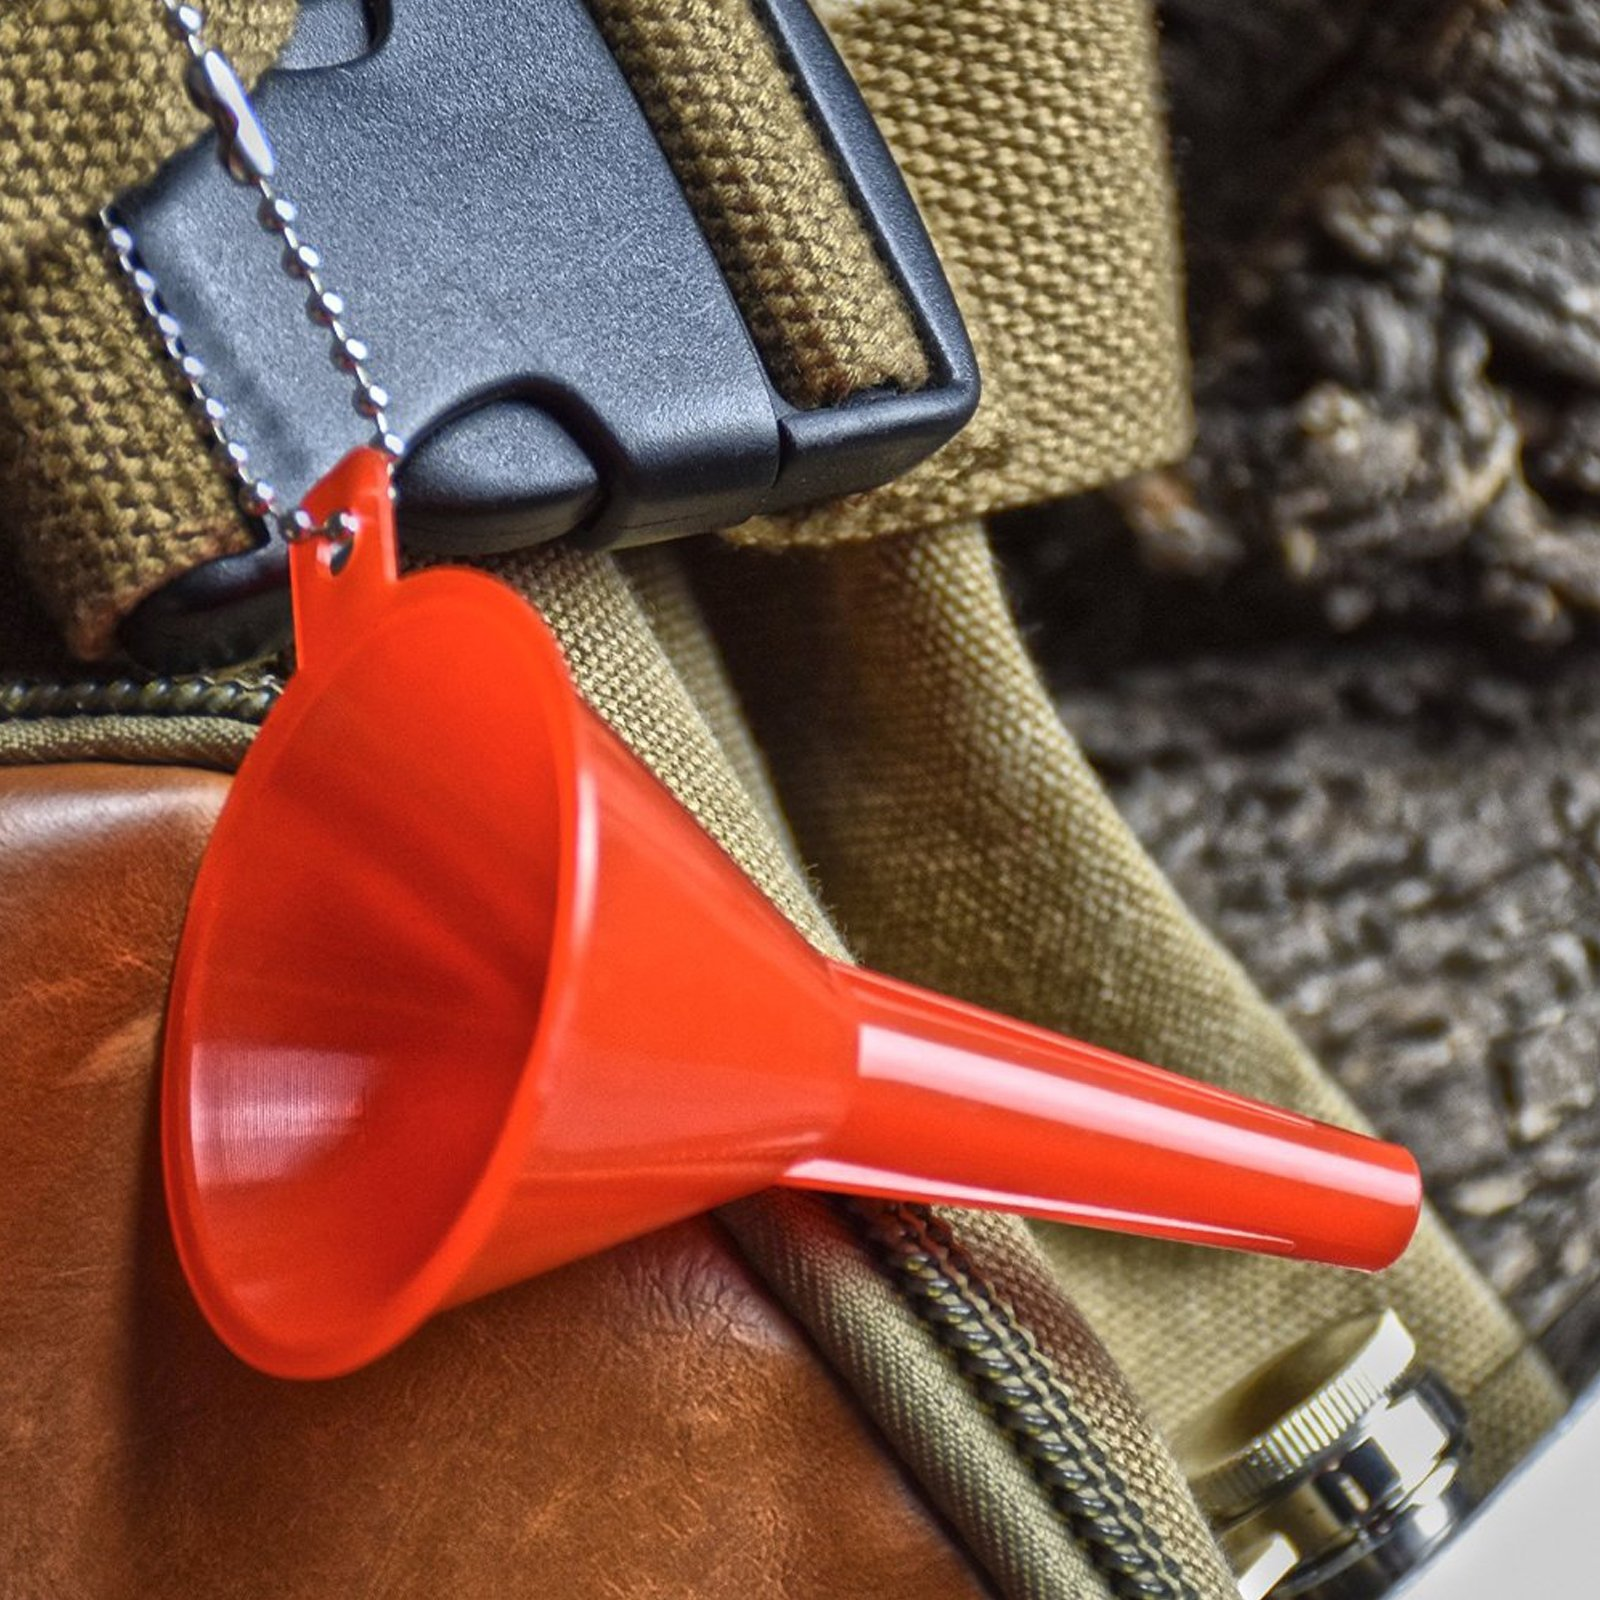 (2 Piece) ASR Outdoor Plastic Funnel Set with Key Chains for Camping Hiking